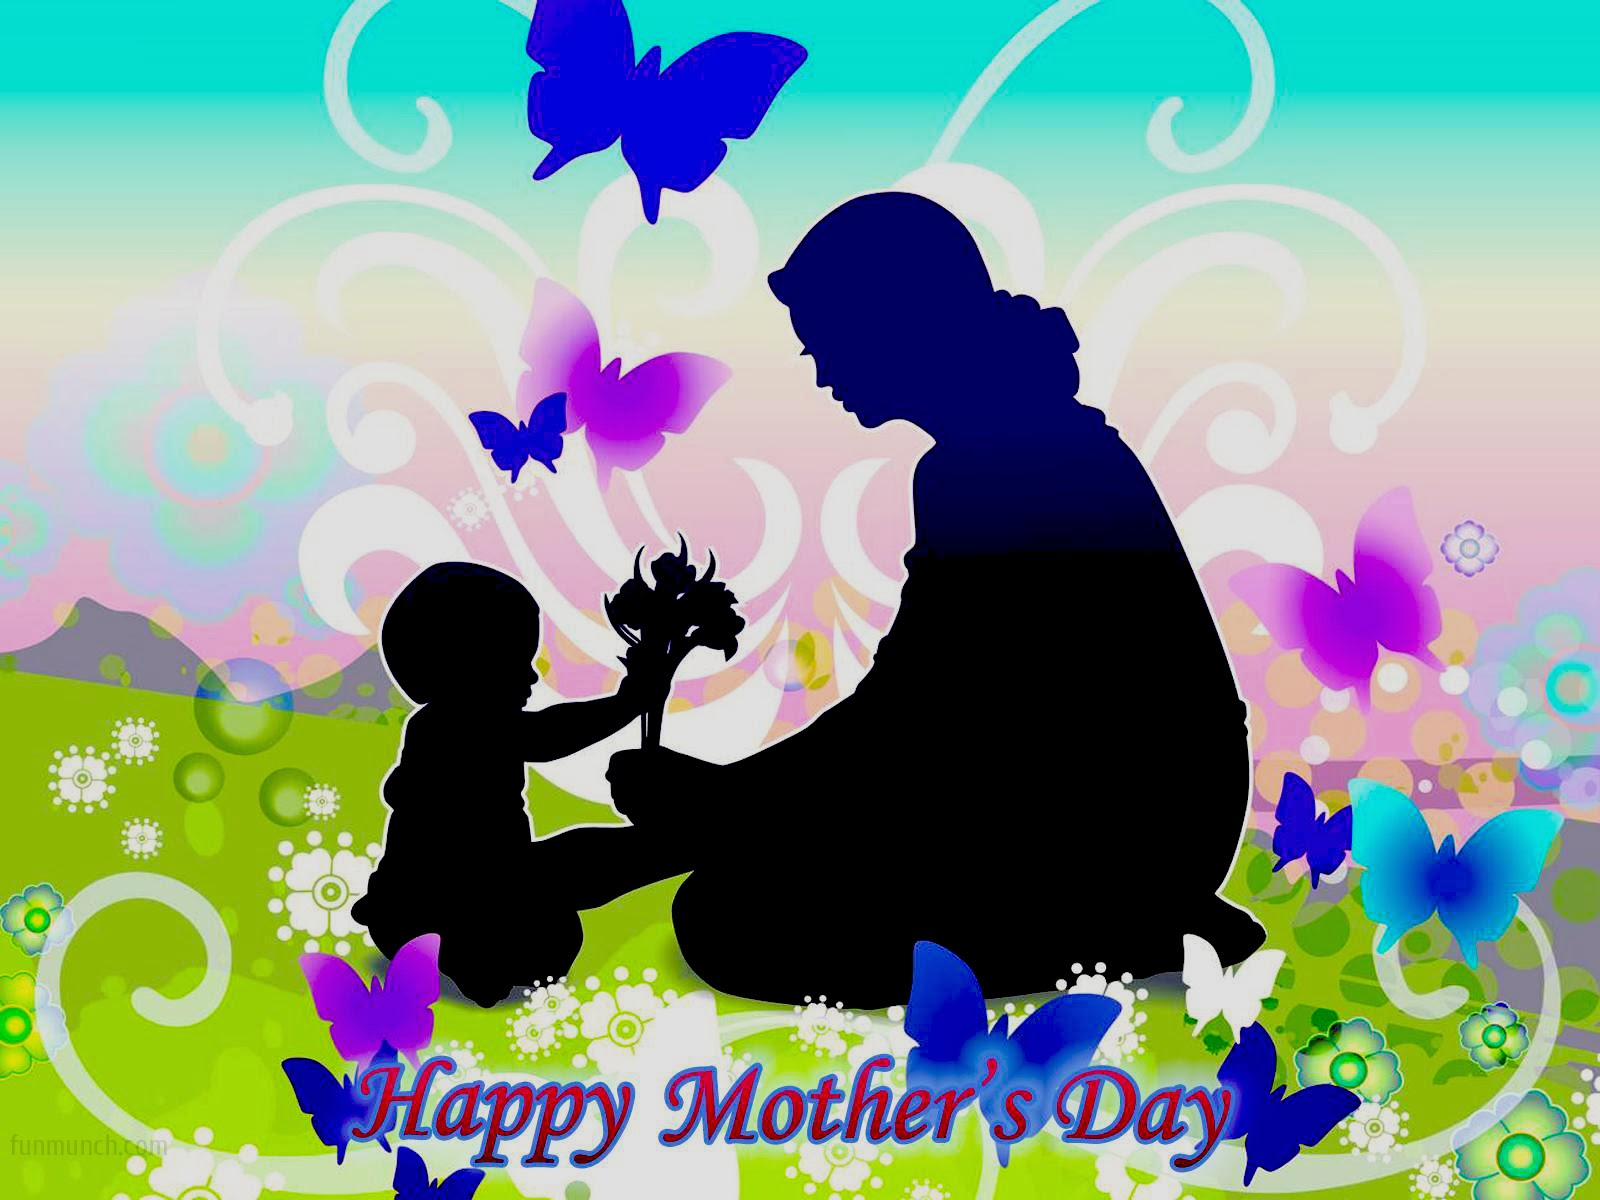 Mothers Day Wallpapers, Mothers Day Wallpaper hd